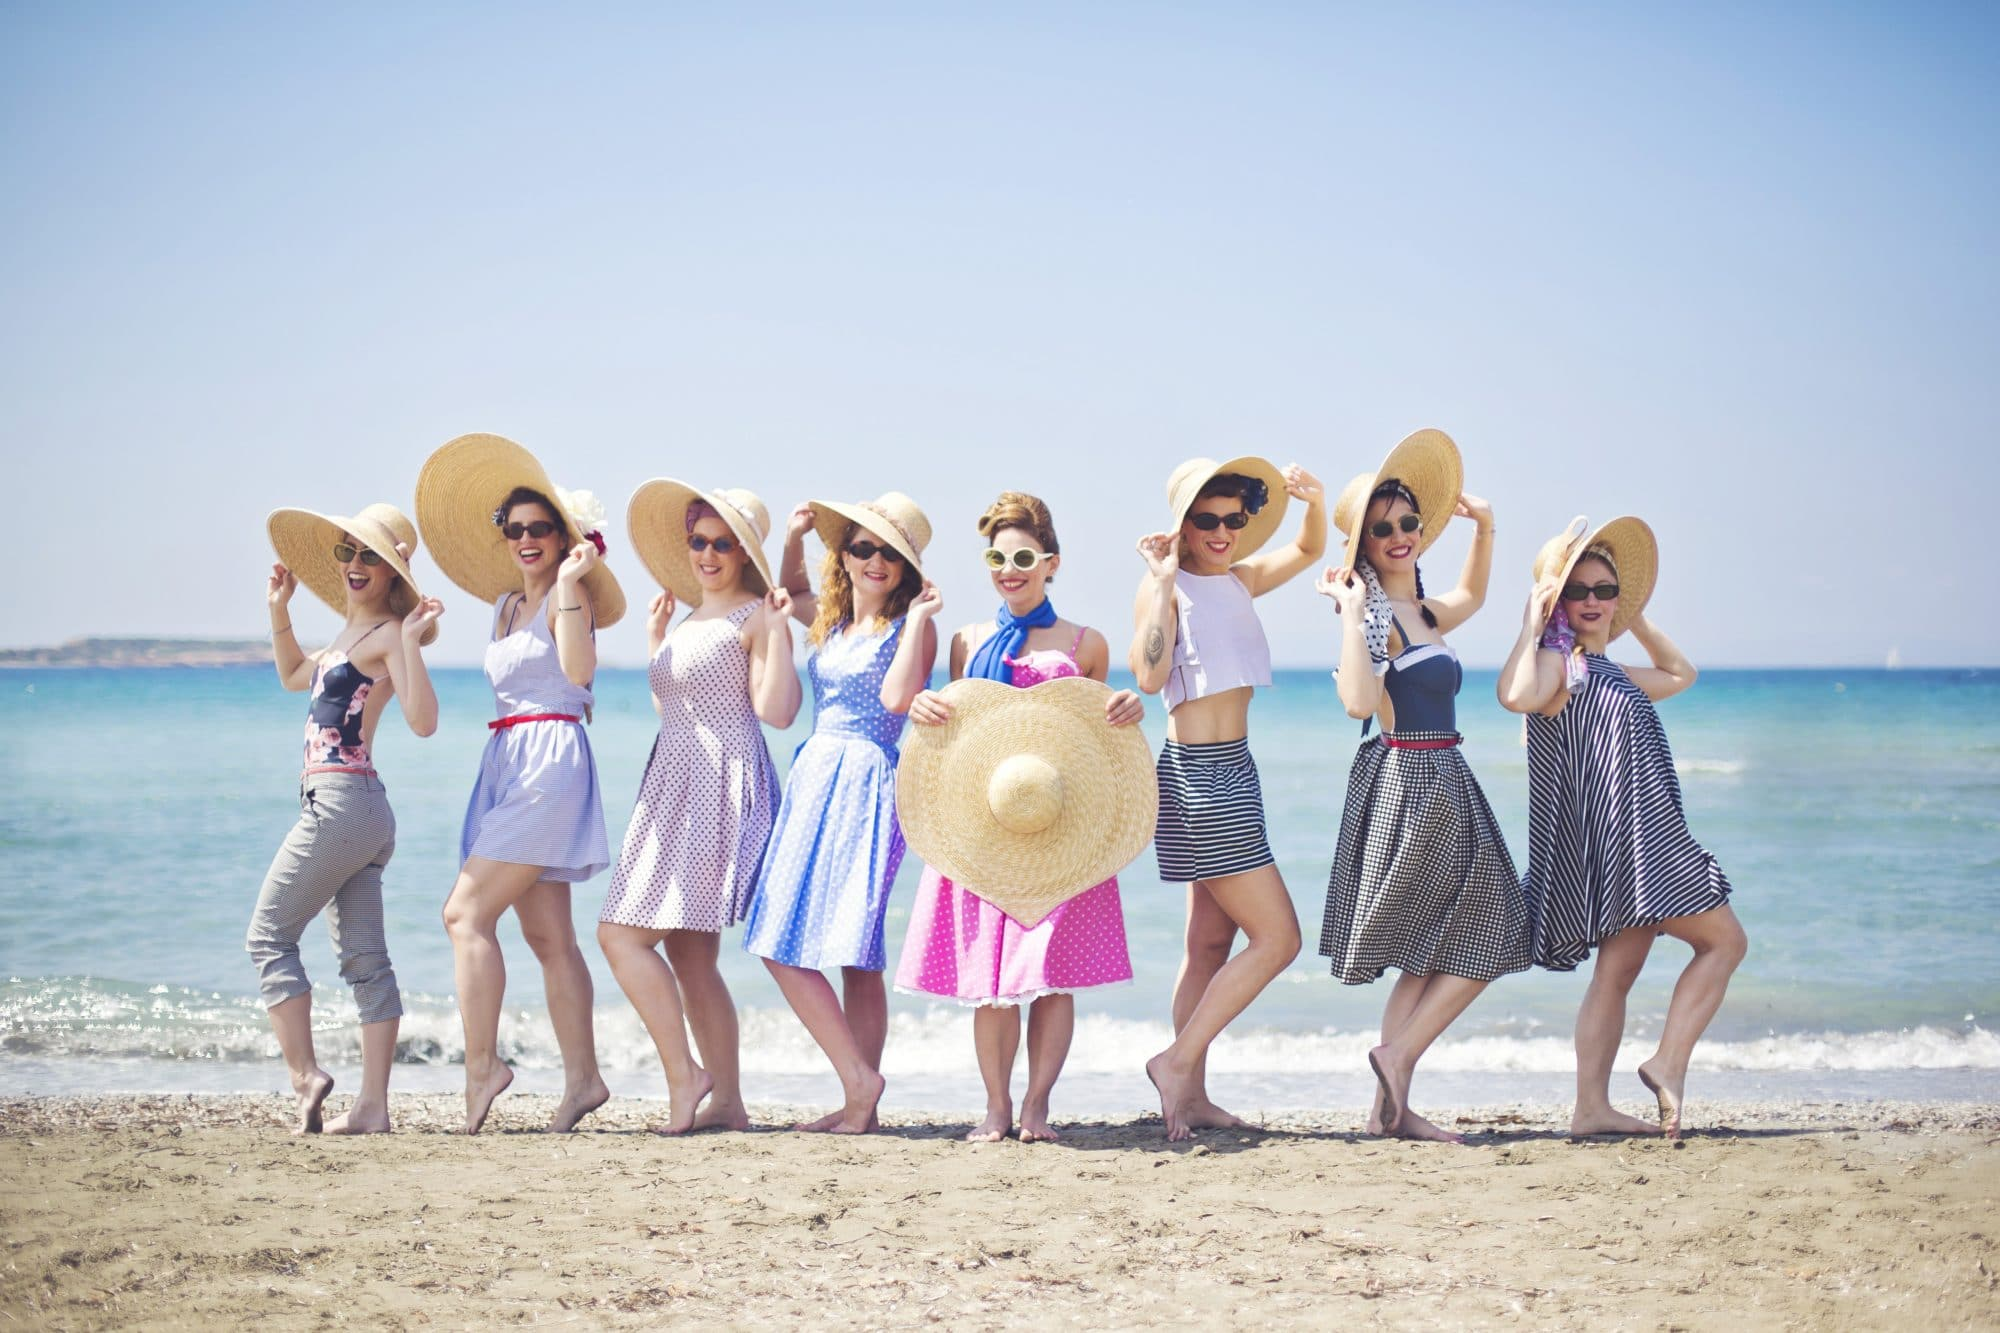 Vintage bachelorette photoshoot on the beach